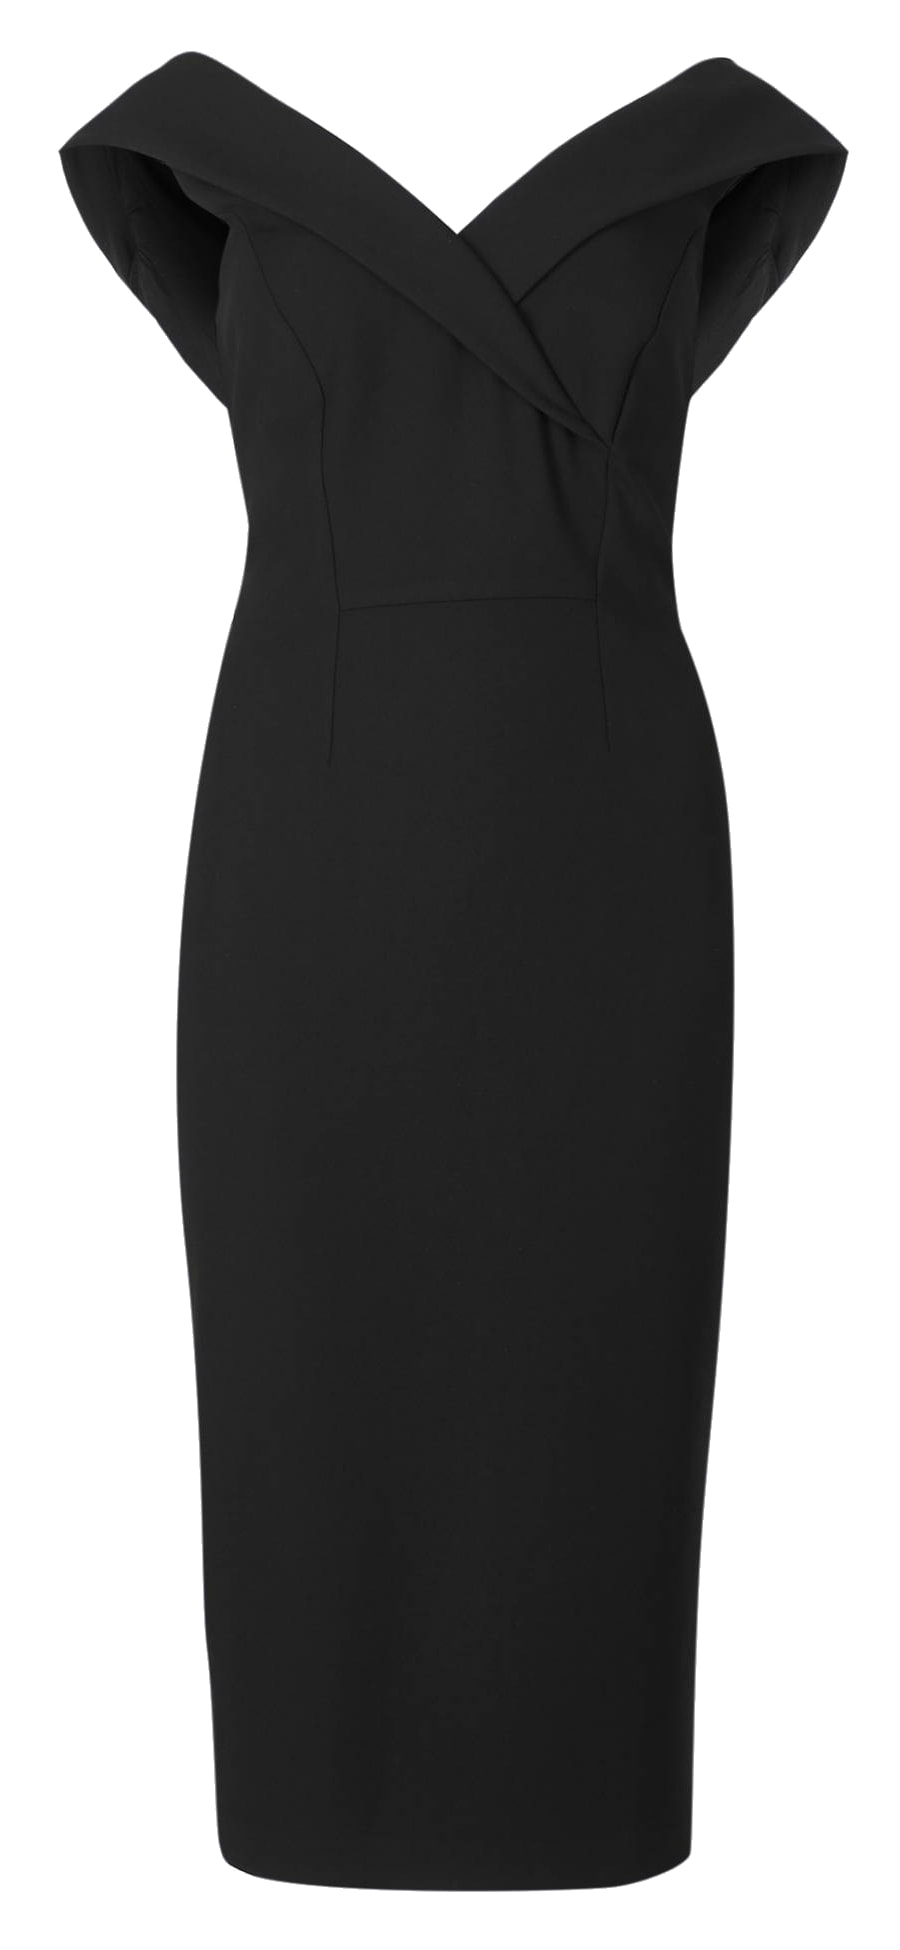 m-s-collection-double-crepe-bodycon-dress_orig.jpg